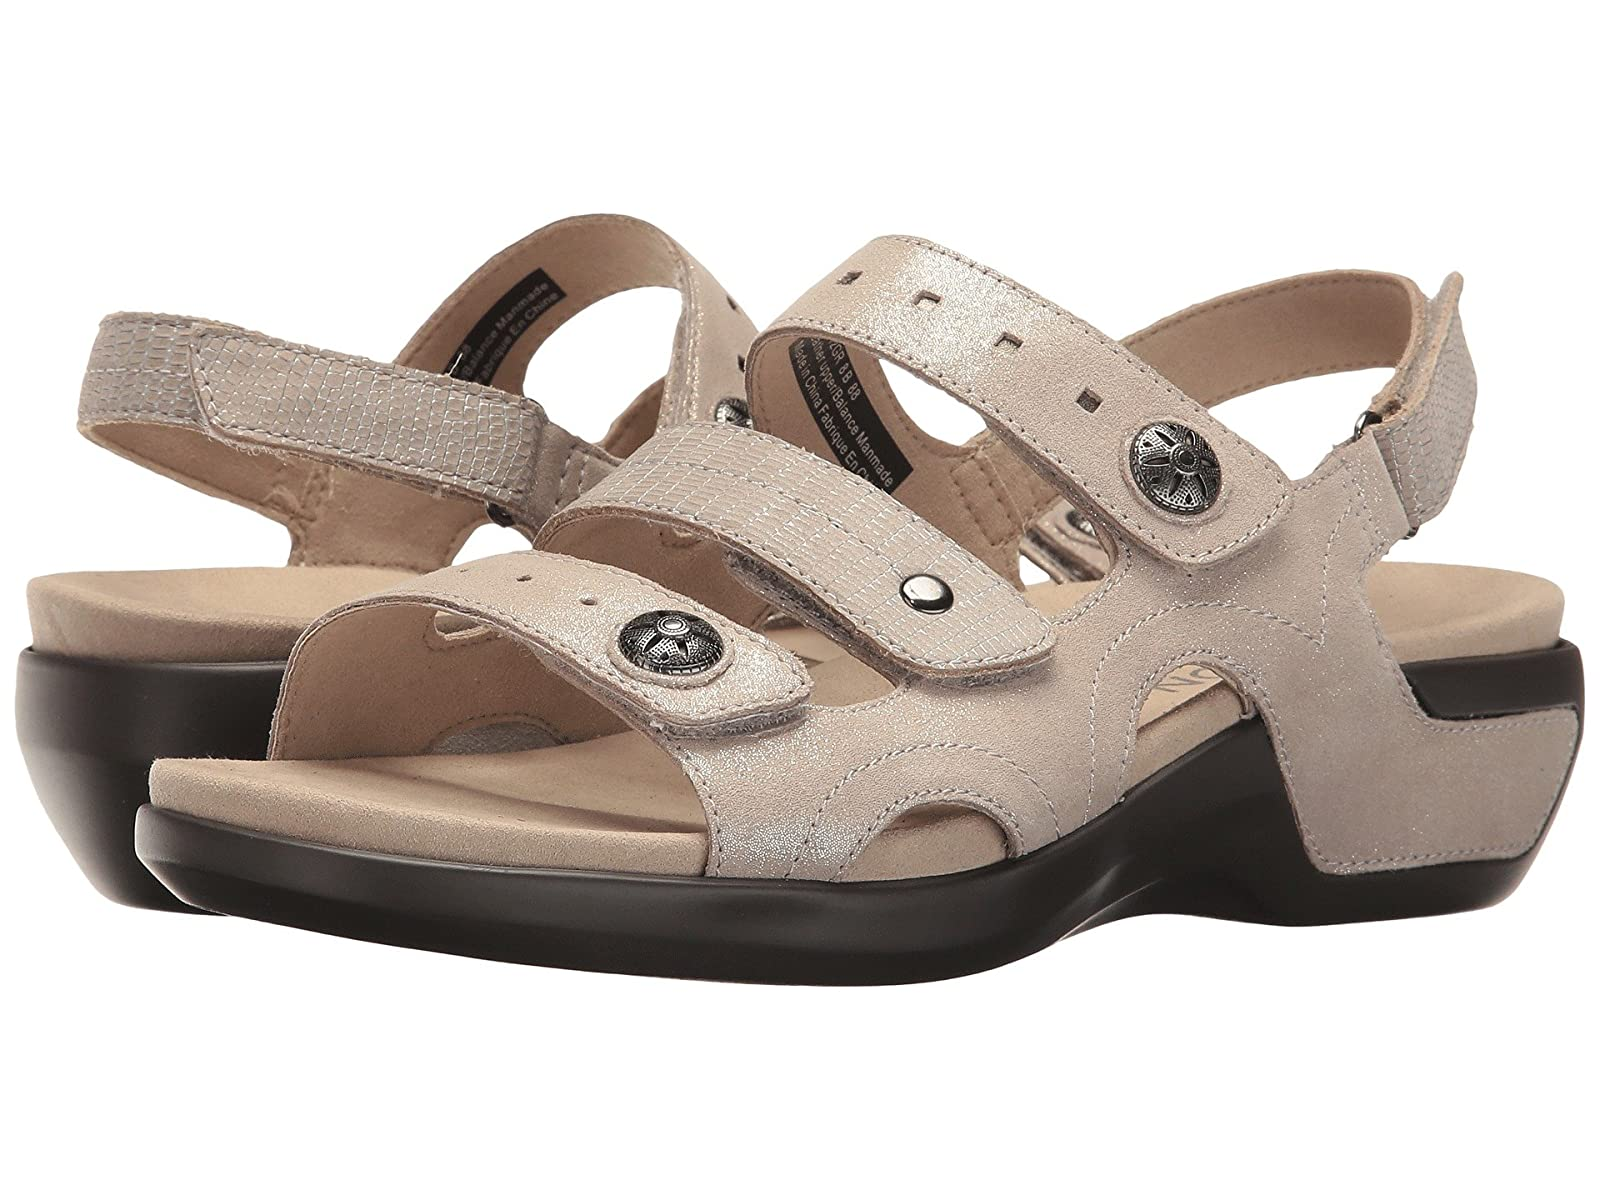 Aravon PC Three StrapAtmospheric grades have affordable shoes